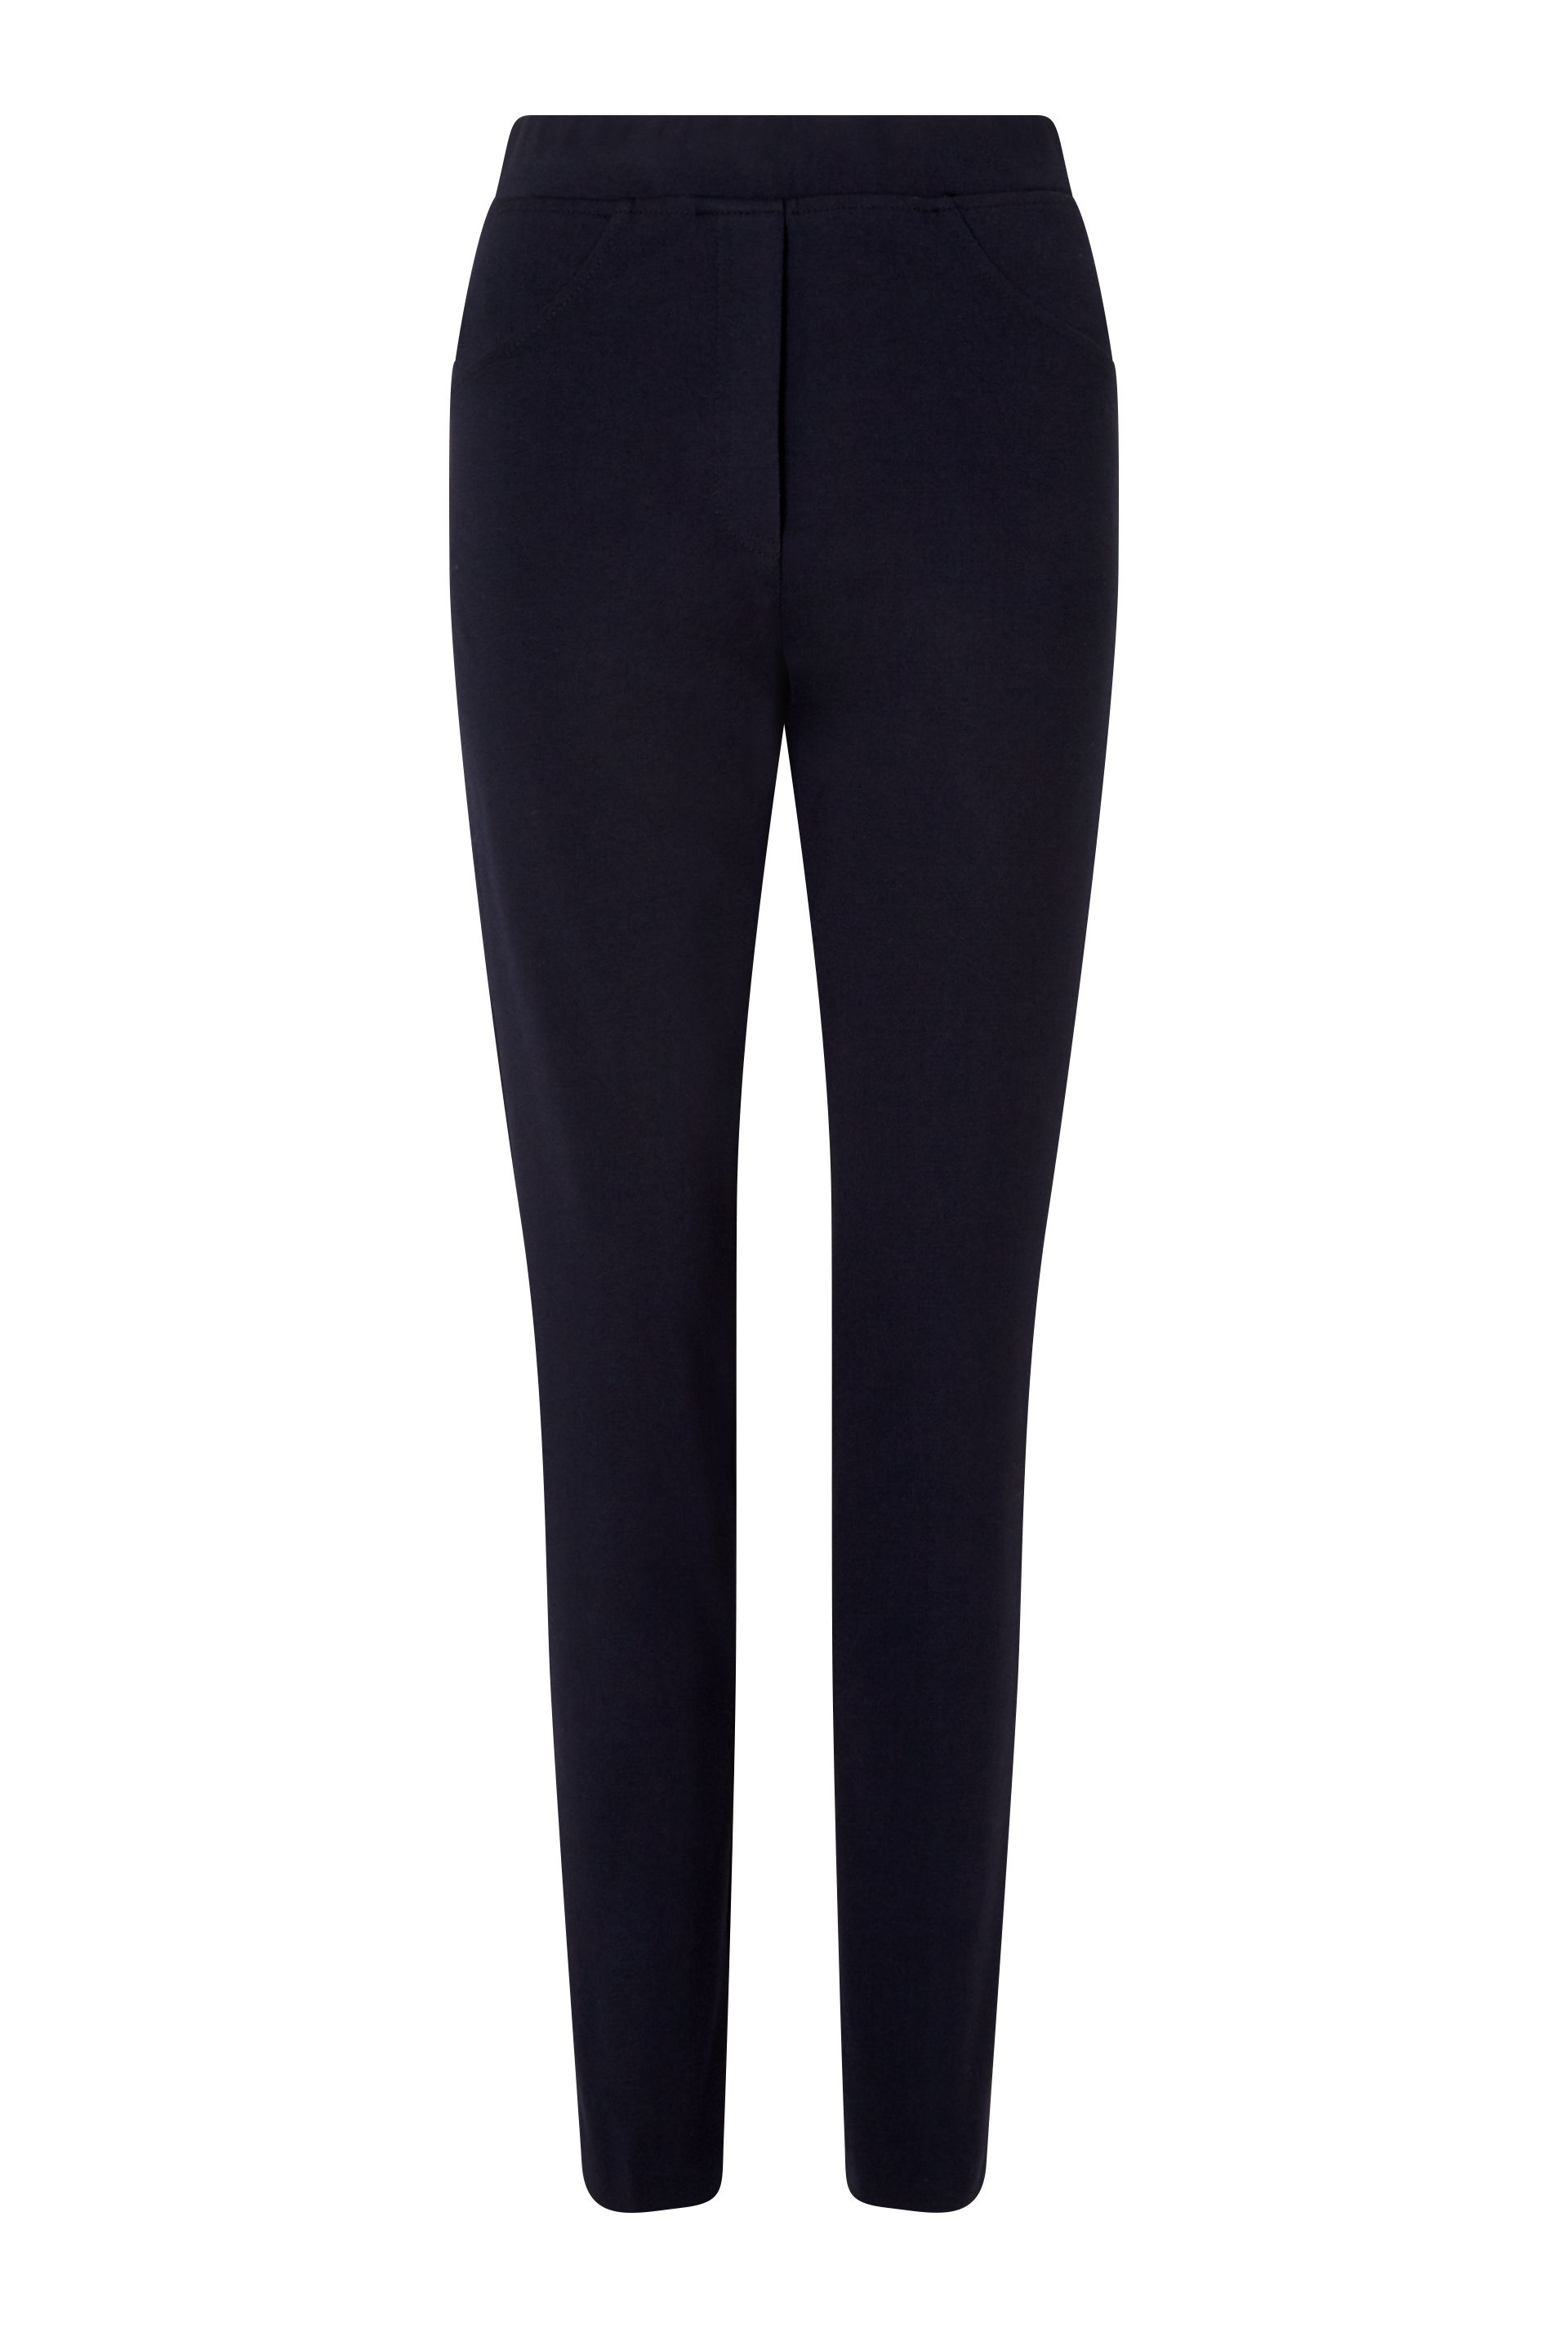 James Lakeland Slim Leg Pull On Trouser, Blue